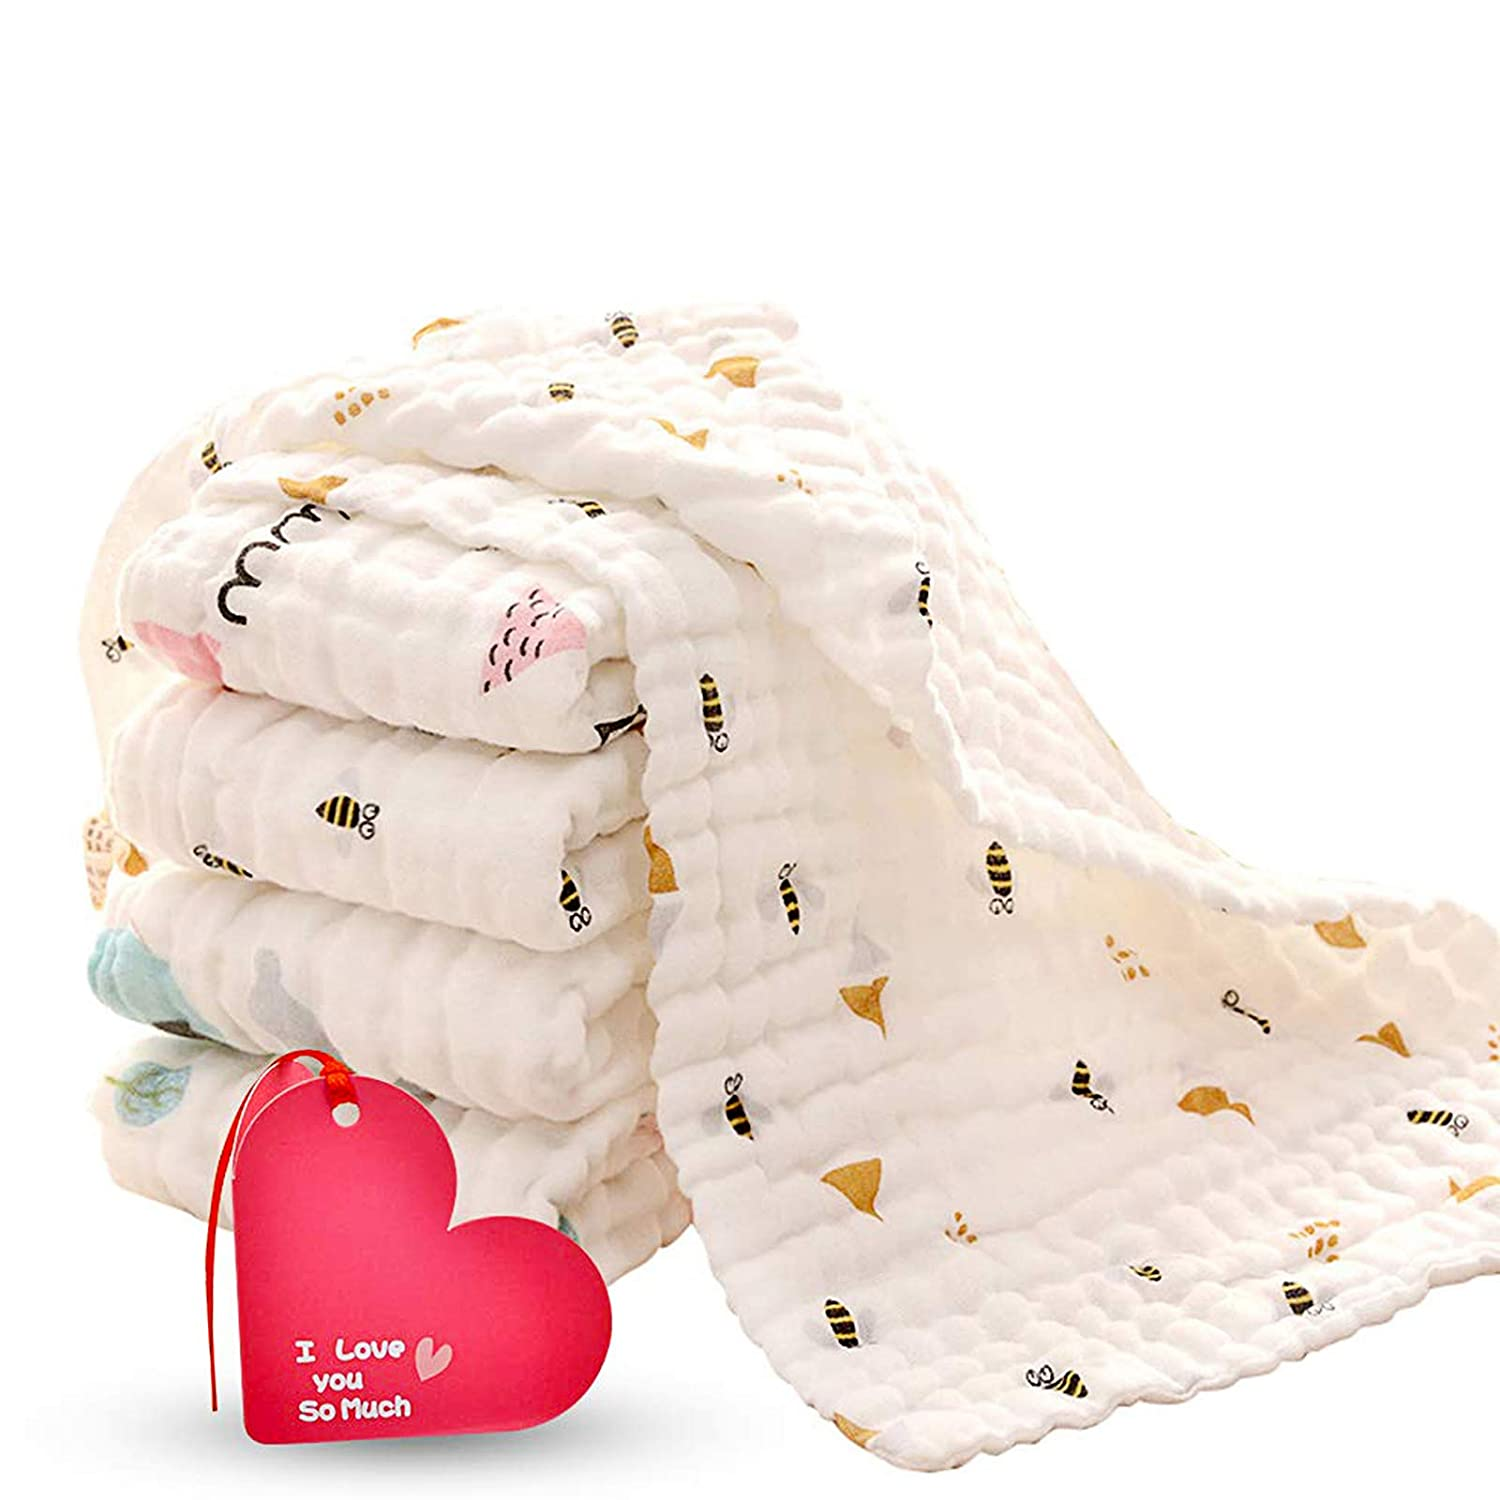 5 Pack Baby Burp Cloths Reusable Baby Towel of Extra Absorbent and Soft Six-ply Cotton Gauze Washcloths 10 x 20